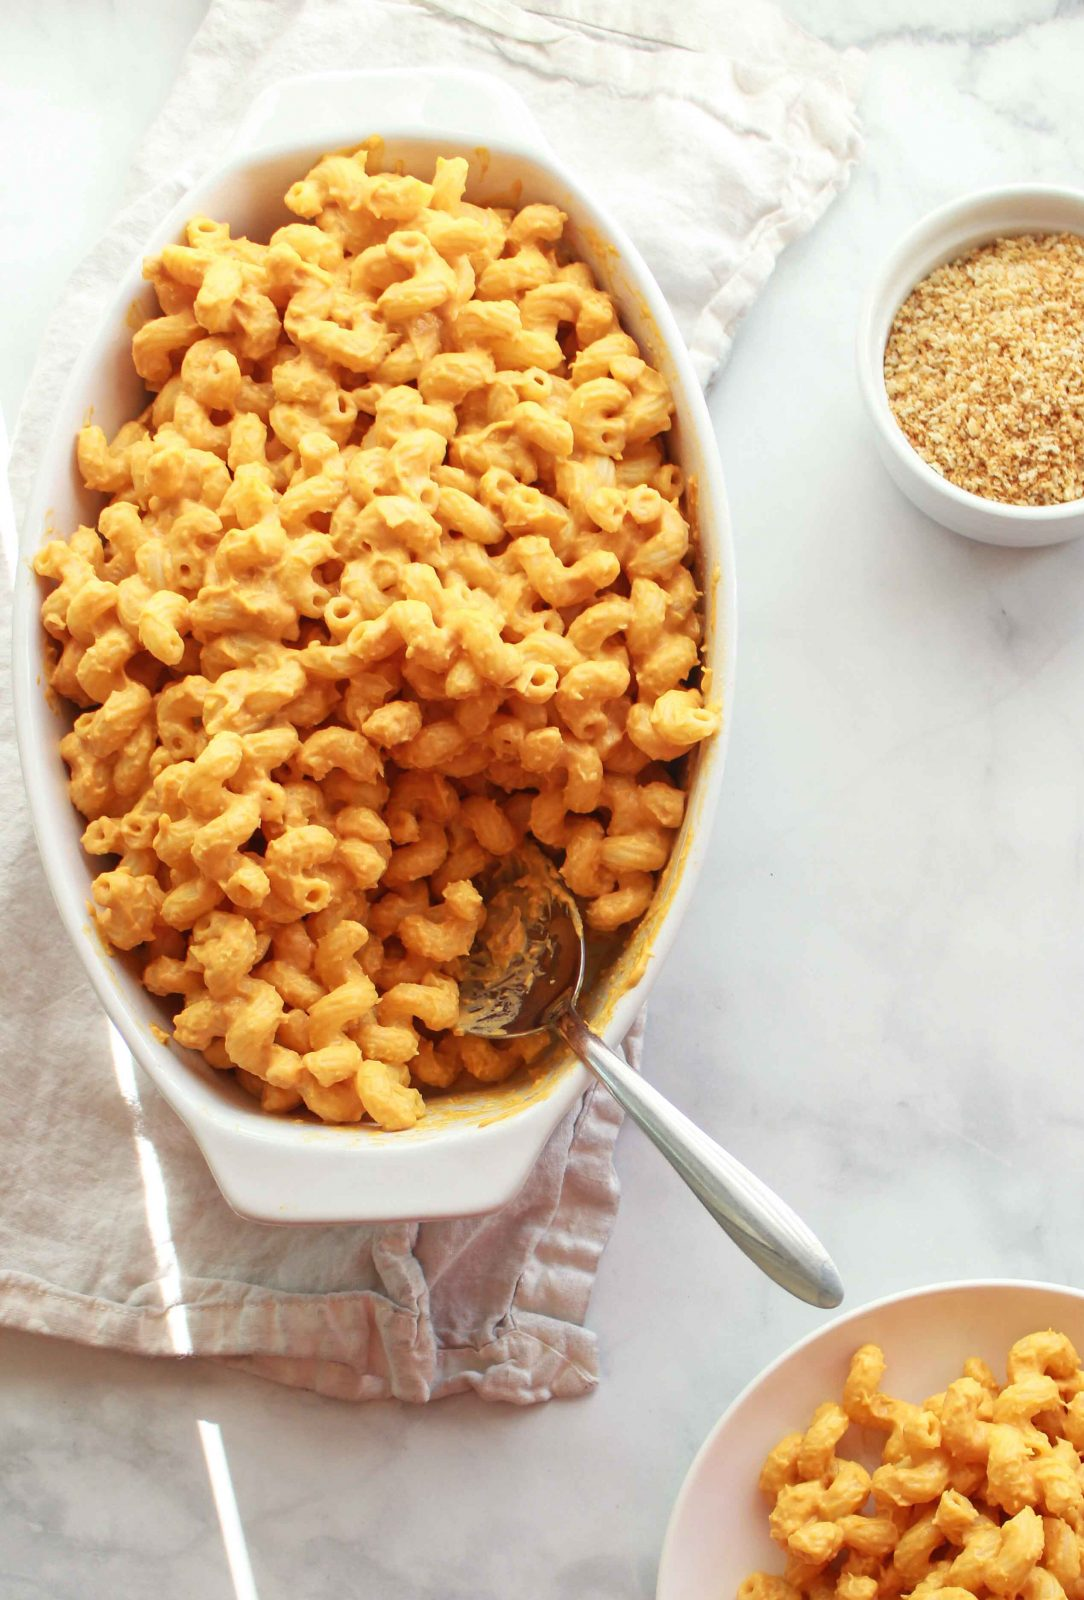 This vegan sweet potato mac and cheese is gluten free, nut free, and a delicious side dish for the holidays.